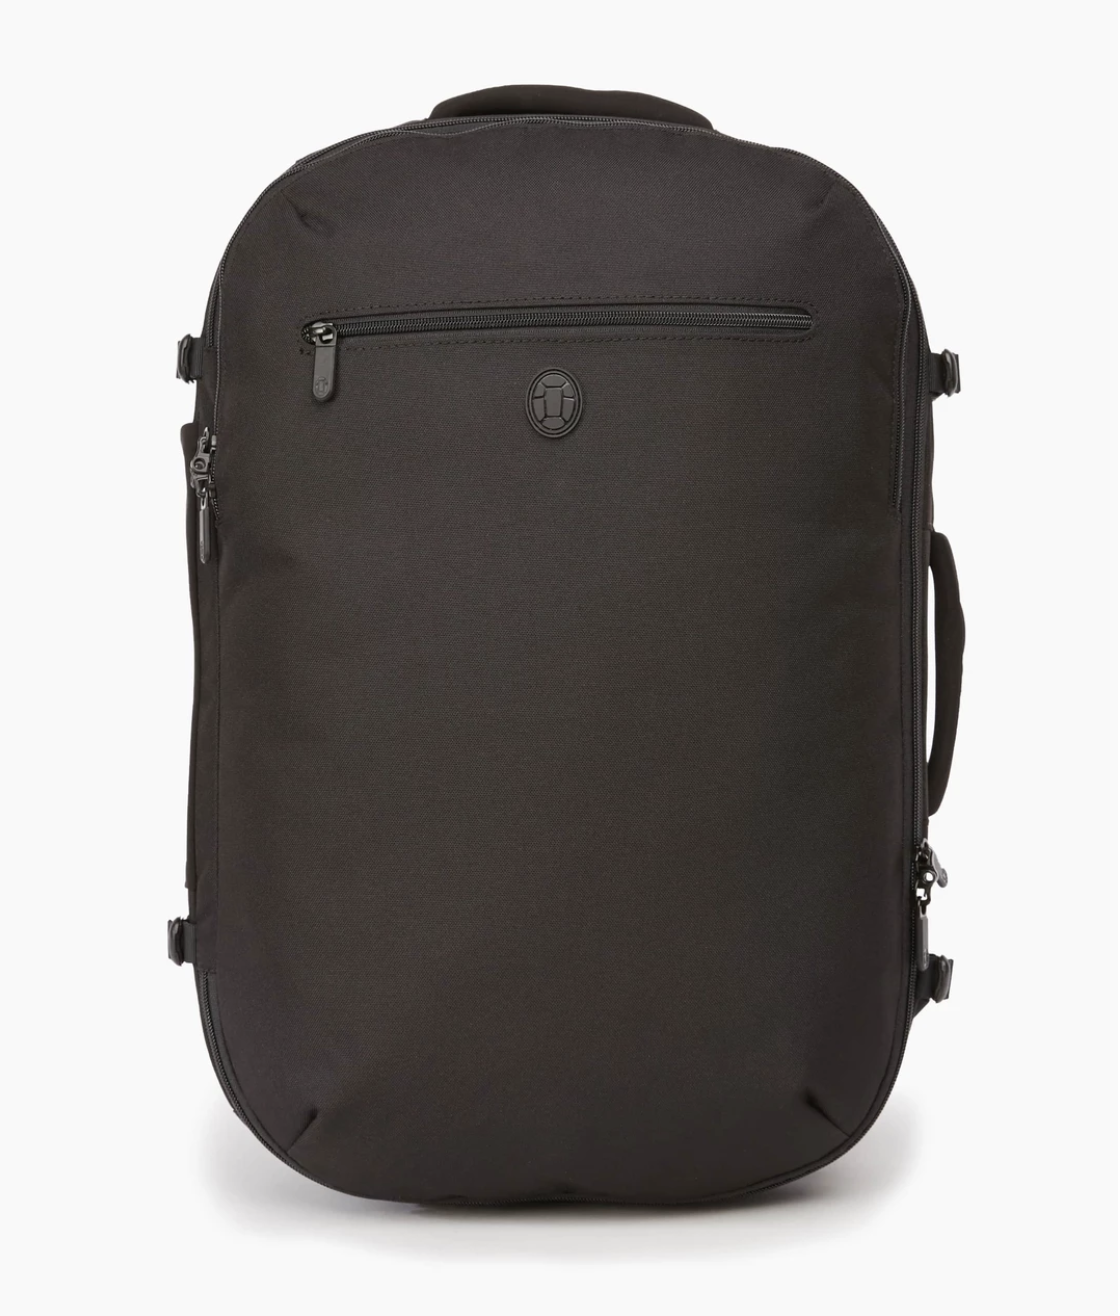 The Tortuga Set Out 45L travel backpack.